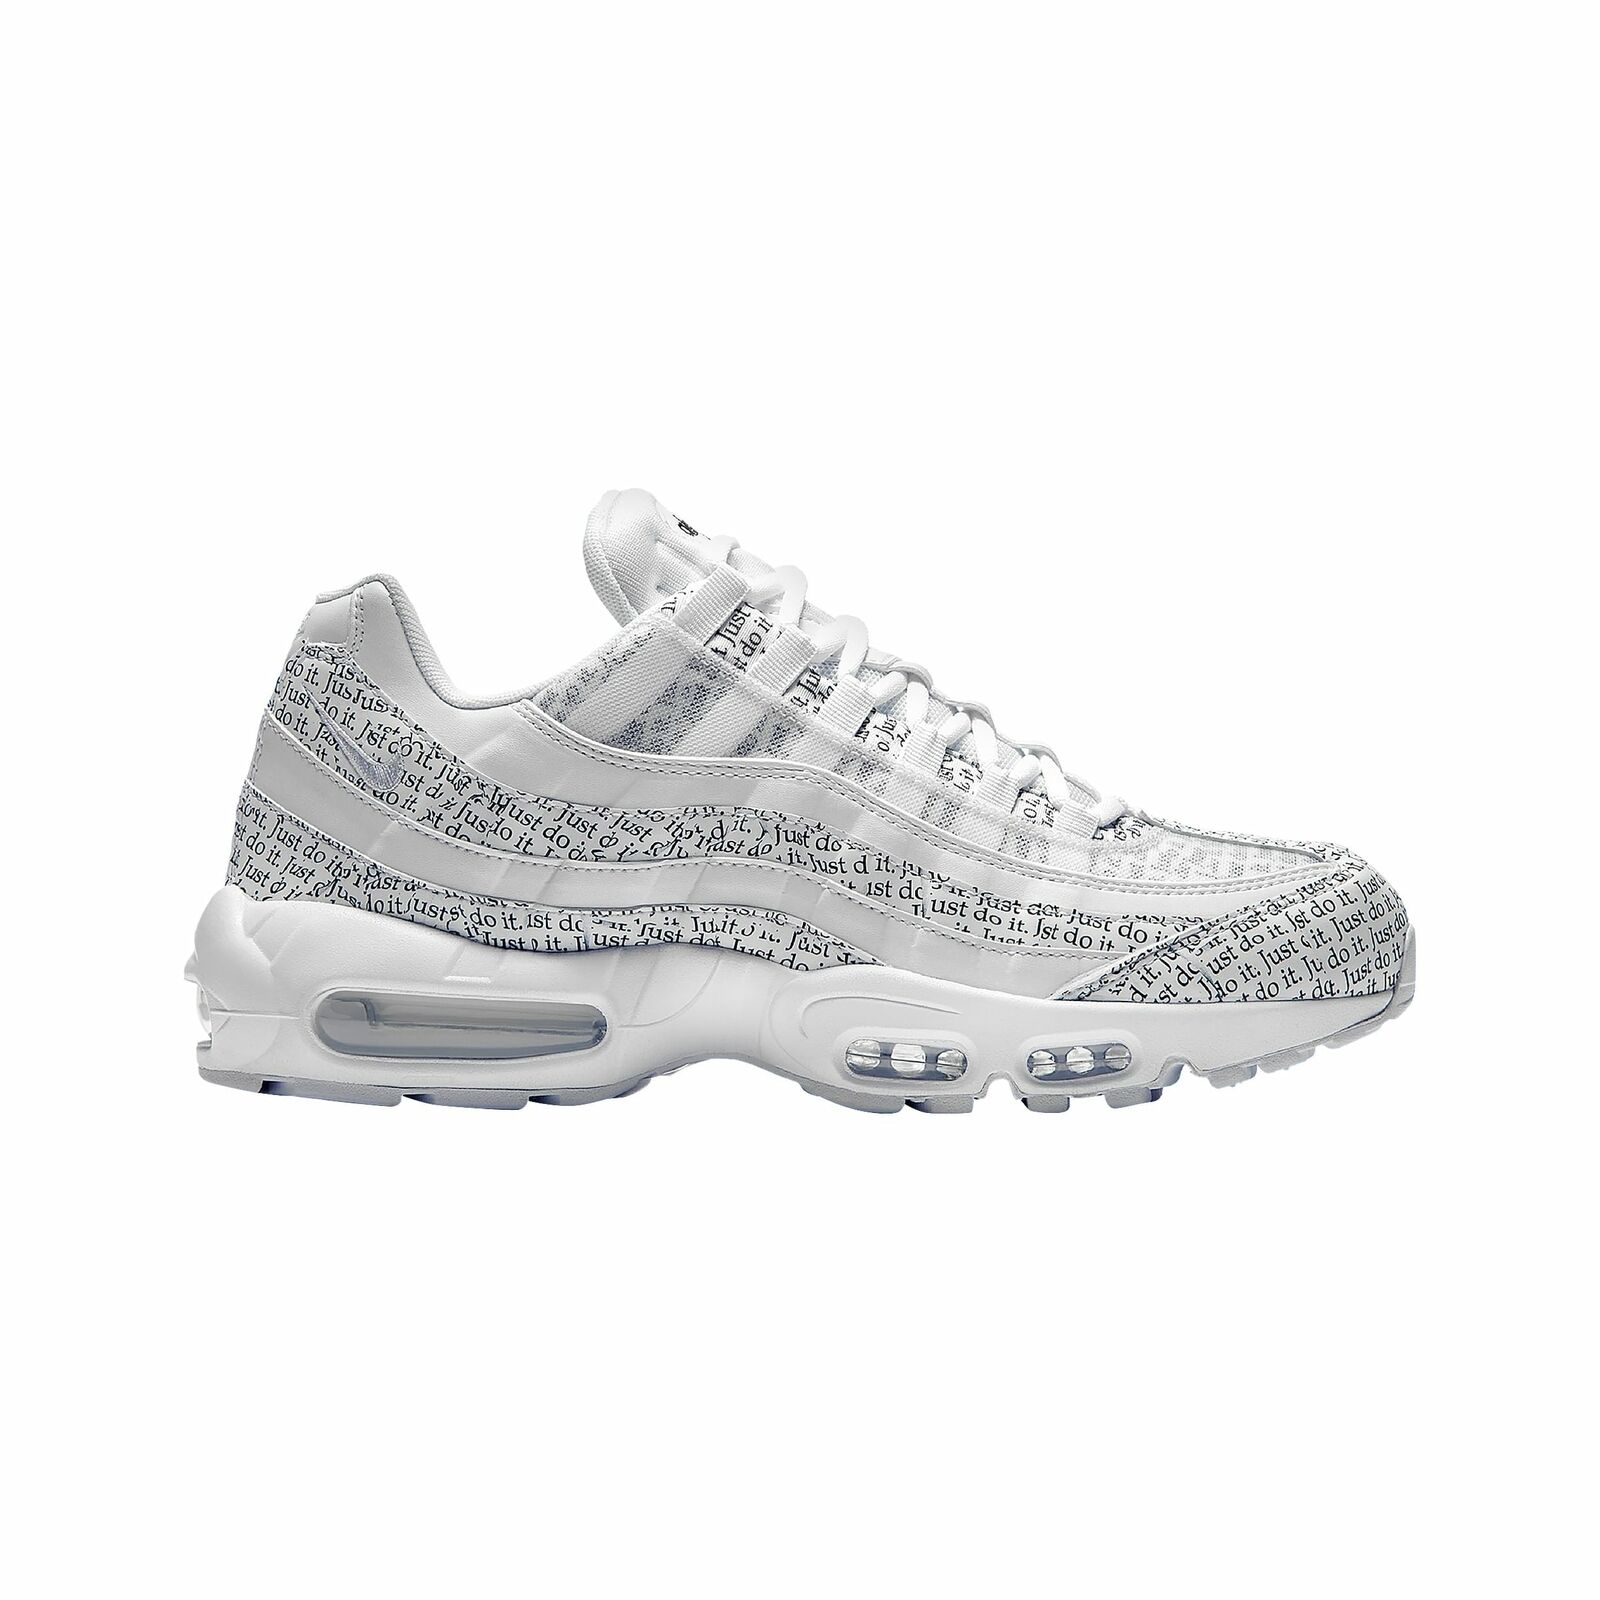 74faf2c782b Nike Air Max 95 JDI - Men's White White White Black V6246100 b4336c ...